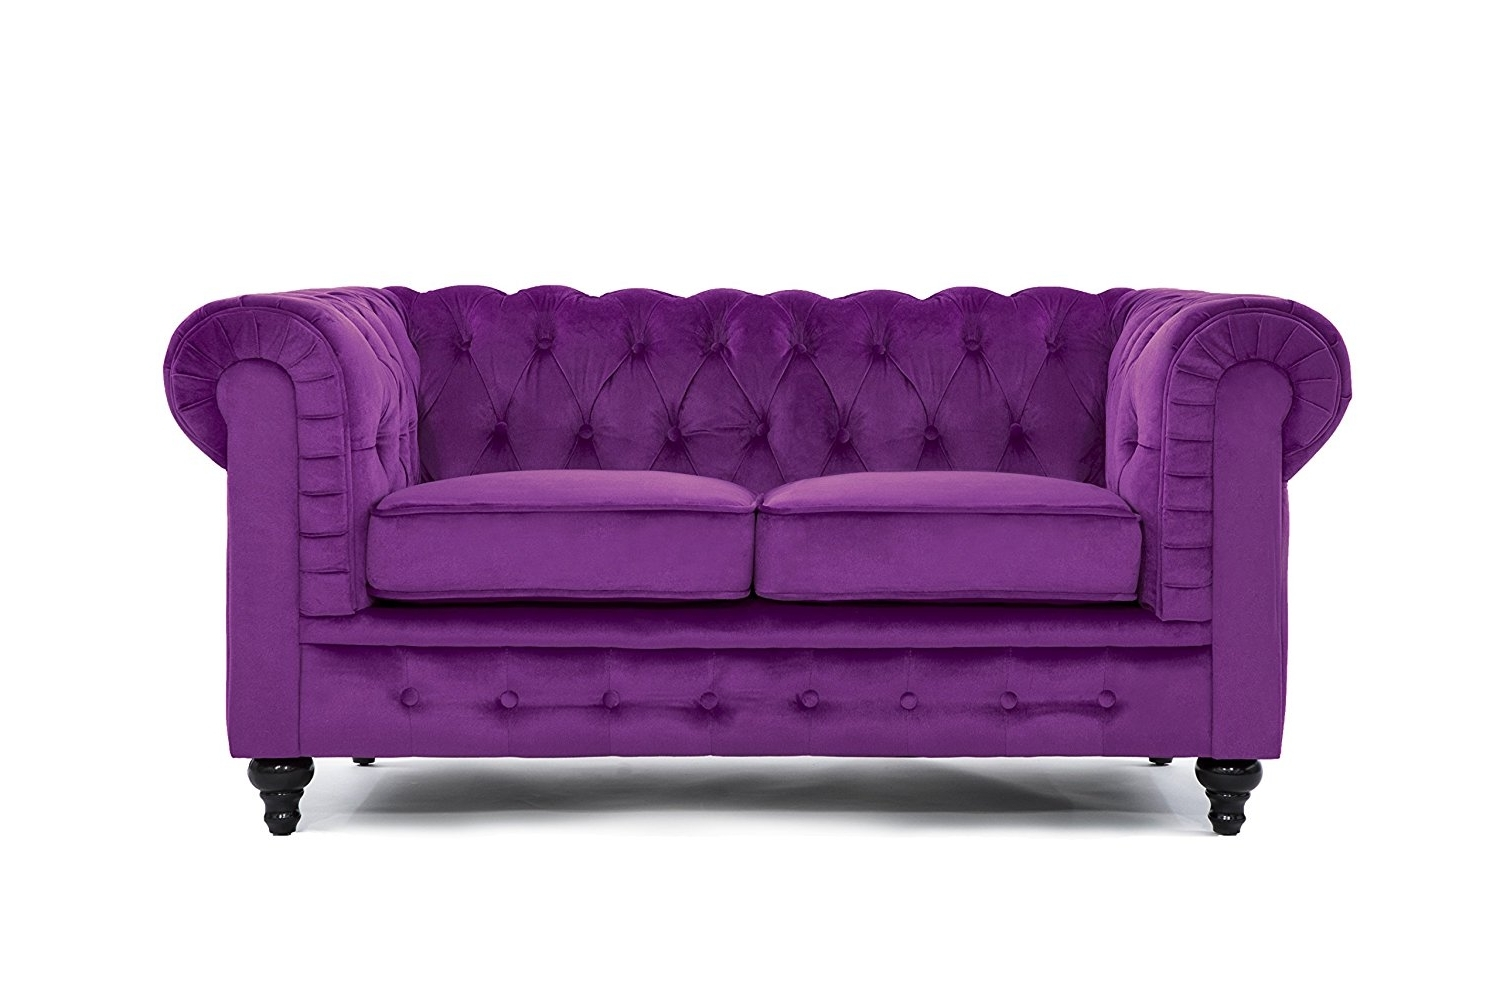 Velvet Purple Sofas For Most Up To Date Amazon: Classic Modern Scroll Arm Velvet Large Love Seat Sofa (Gallery 6 of 15)